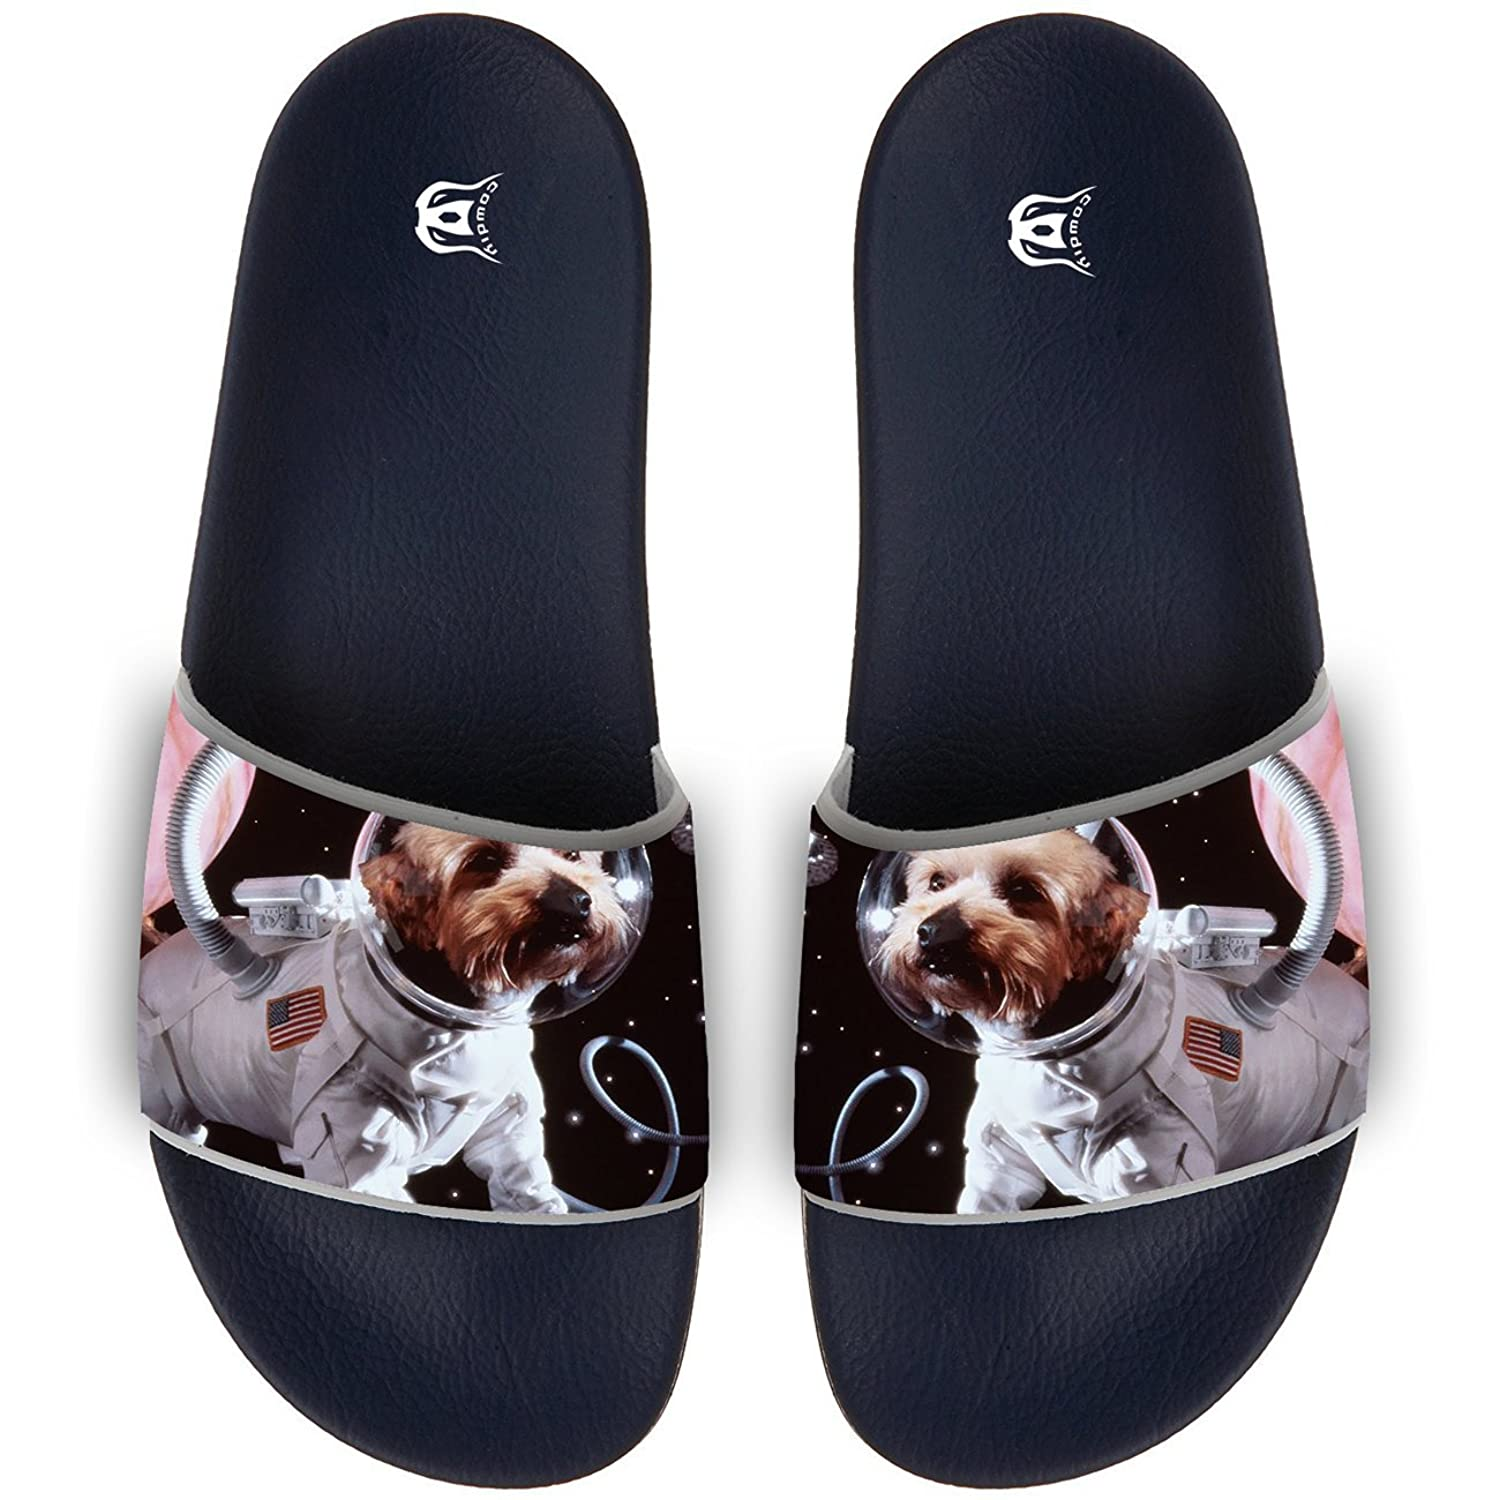 90e994a84a747 COWDIY Fashion Slide Sandals Space Dog Astronaut Cute Beach Slippers ...